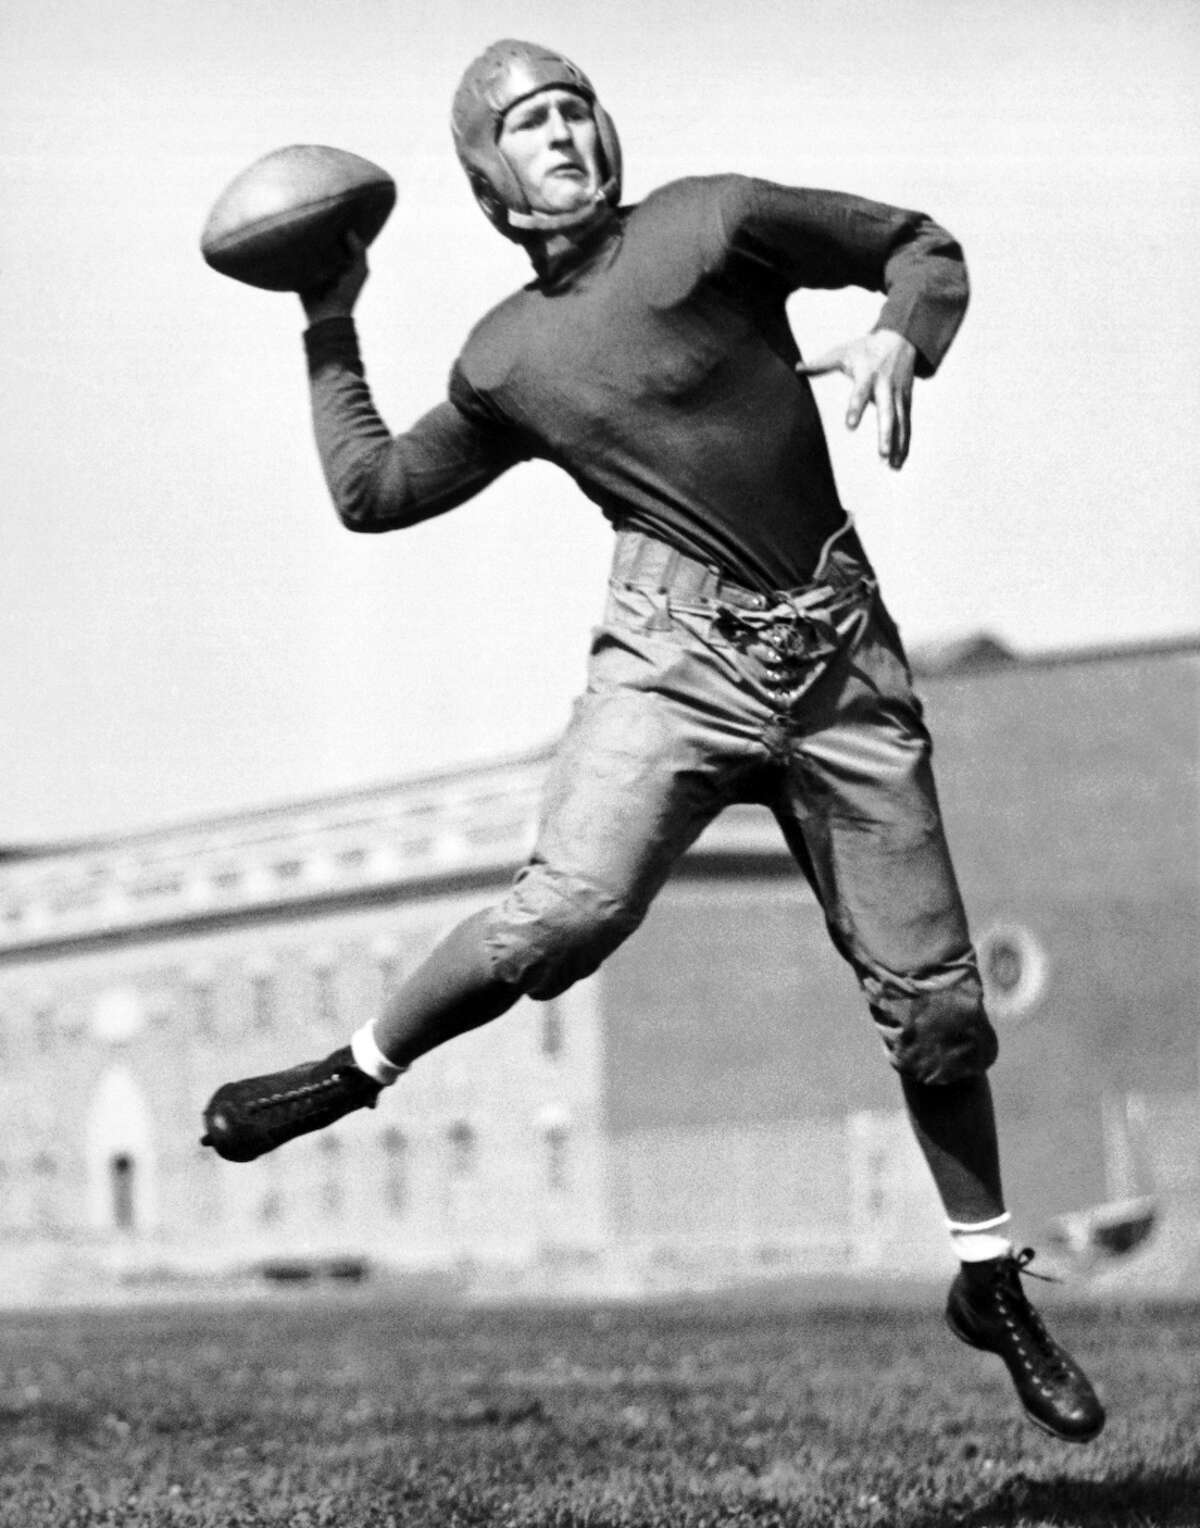 The early yearsAfter 109 meetings, the Huskies lead the all-time series against the Cougars 71-32-6. And while Montlake has certainly earned that edge, things were quite different back in the early era of the Apple Cup. Pictured here is Phil Sarboe, the Washington State College quarterback in 1933, when the Cougars beat the Huskies 17-6 in Pullman. Several of the early rivalry games ended in a tie. The last draw came in 1942, when the teams battled to a (thrilling?) 0-0 result at Husky Stadium. The first-ever meeting between the schools, in 1900 in Seattle, ended in a 5-5 tie.